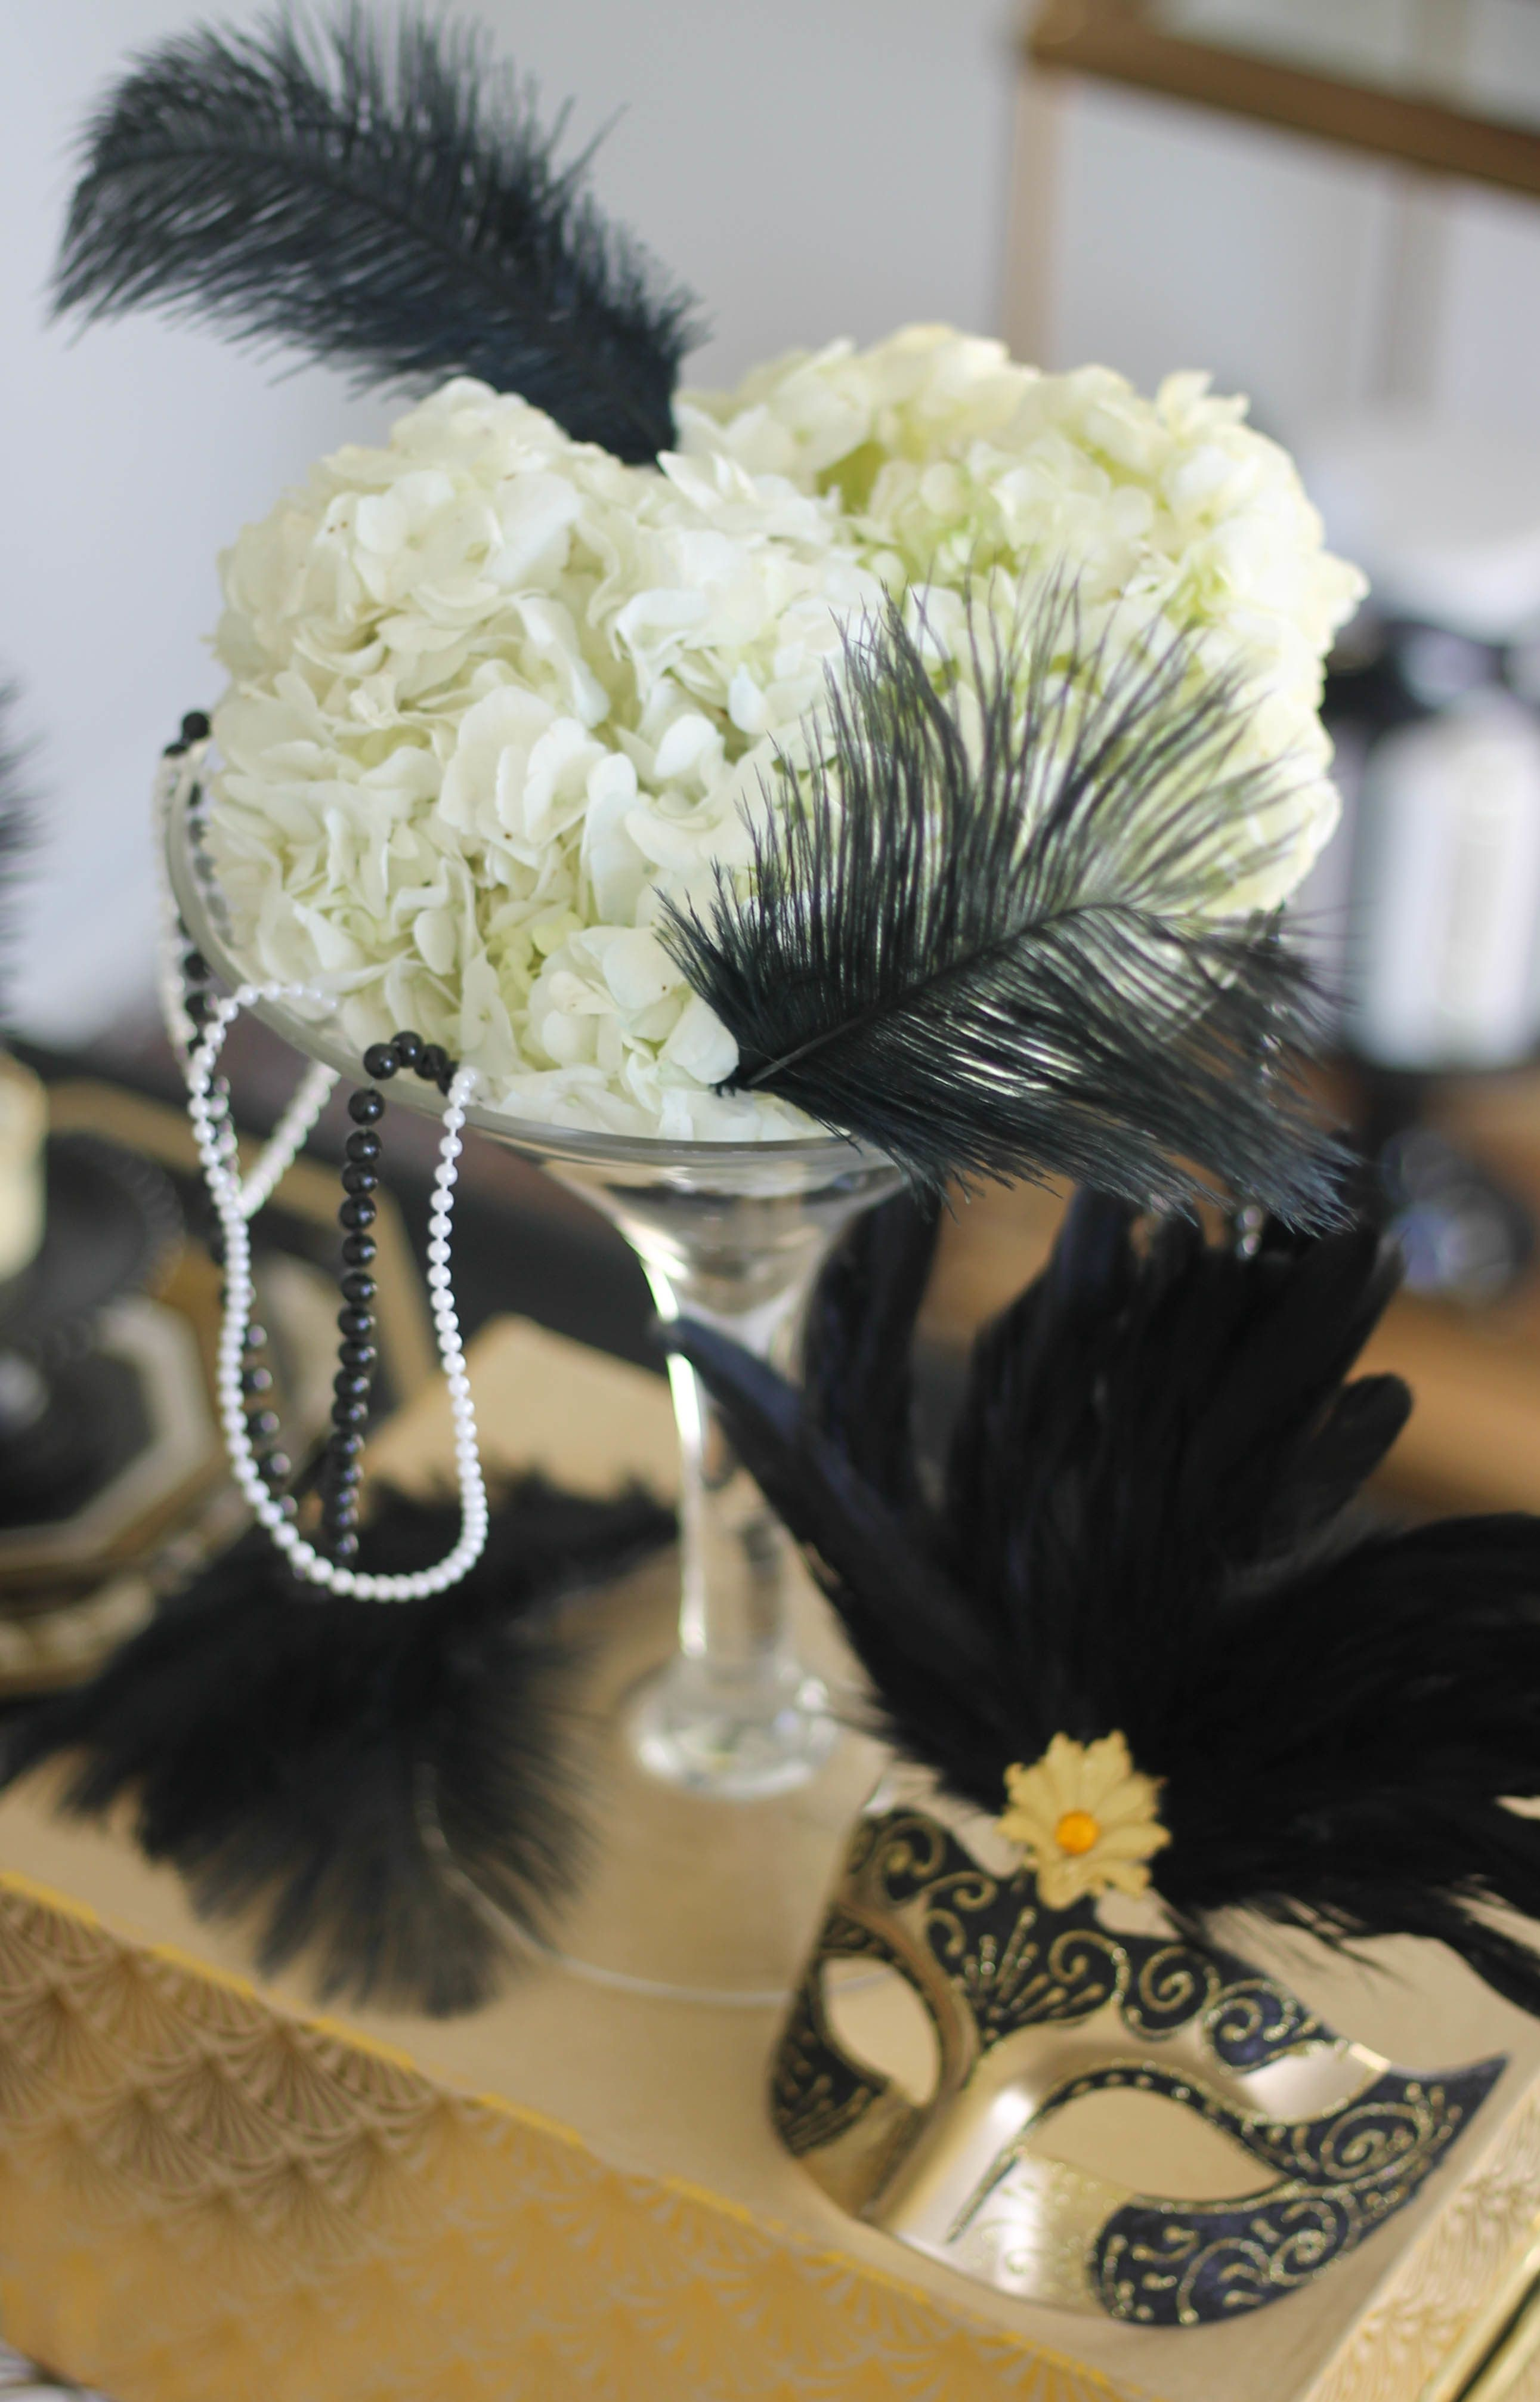 1920's Themed New Year's Eve Party (With images) | Gatsby ...